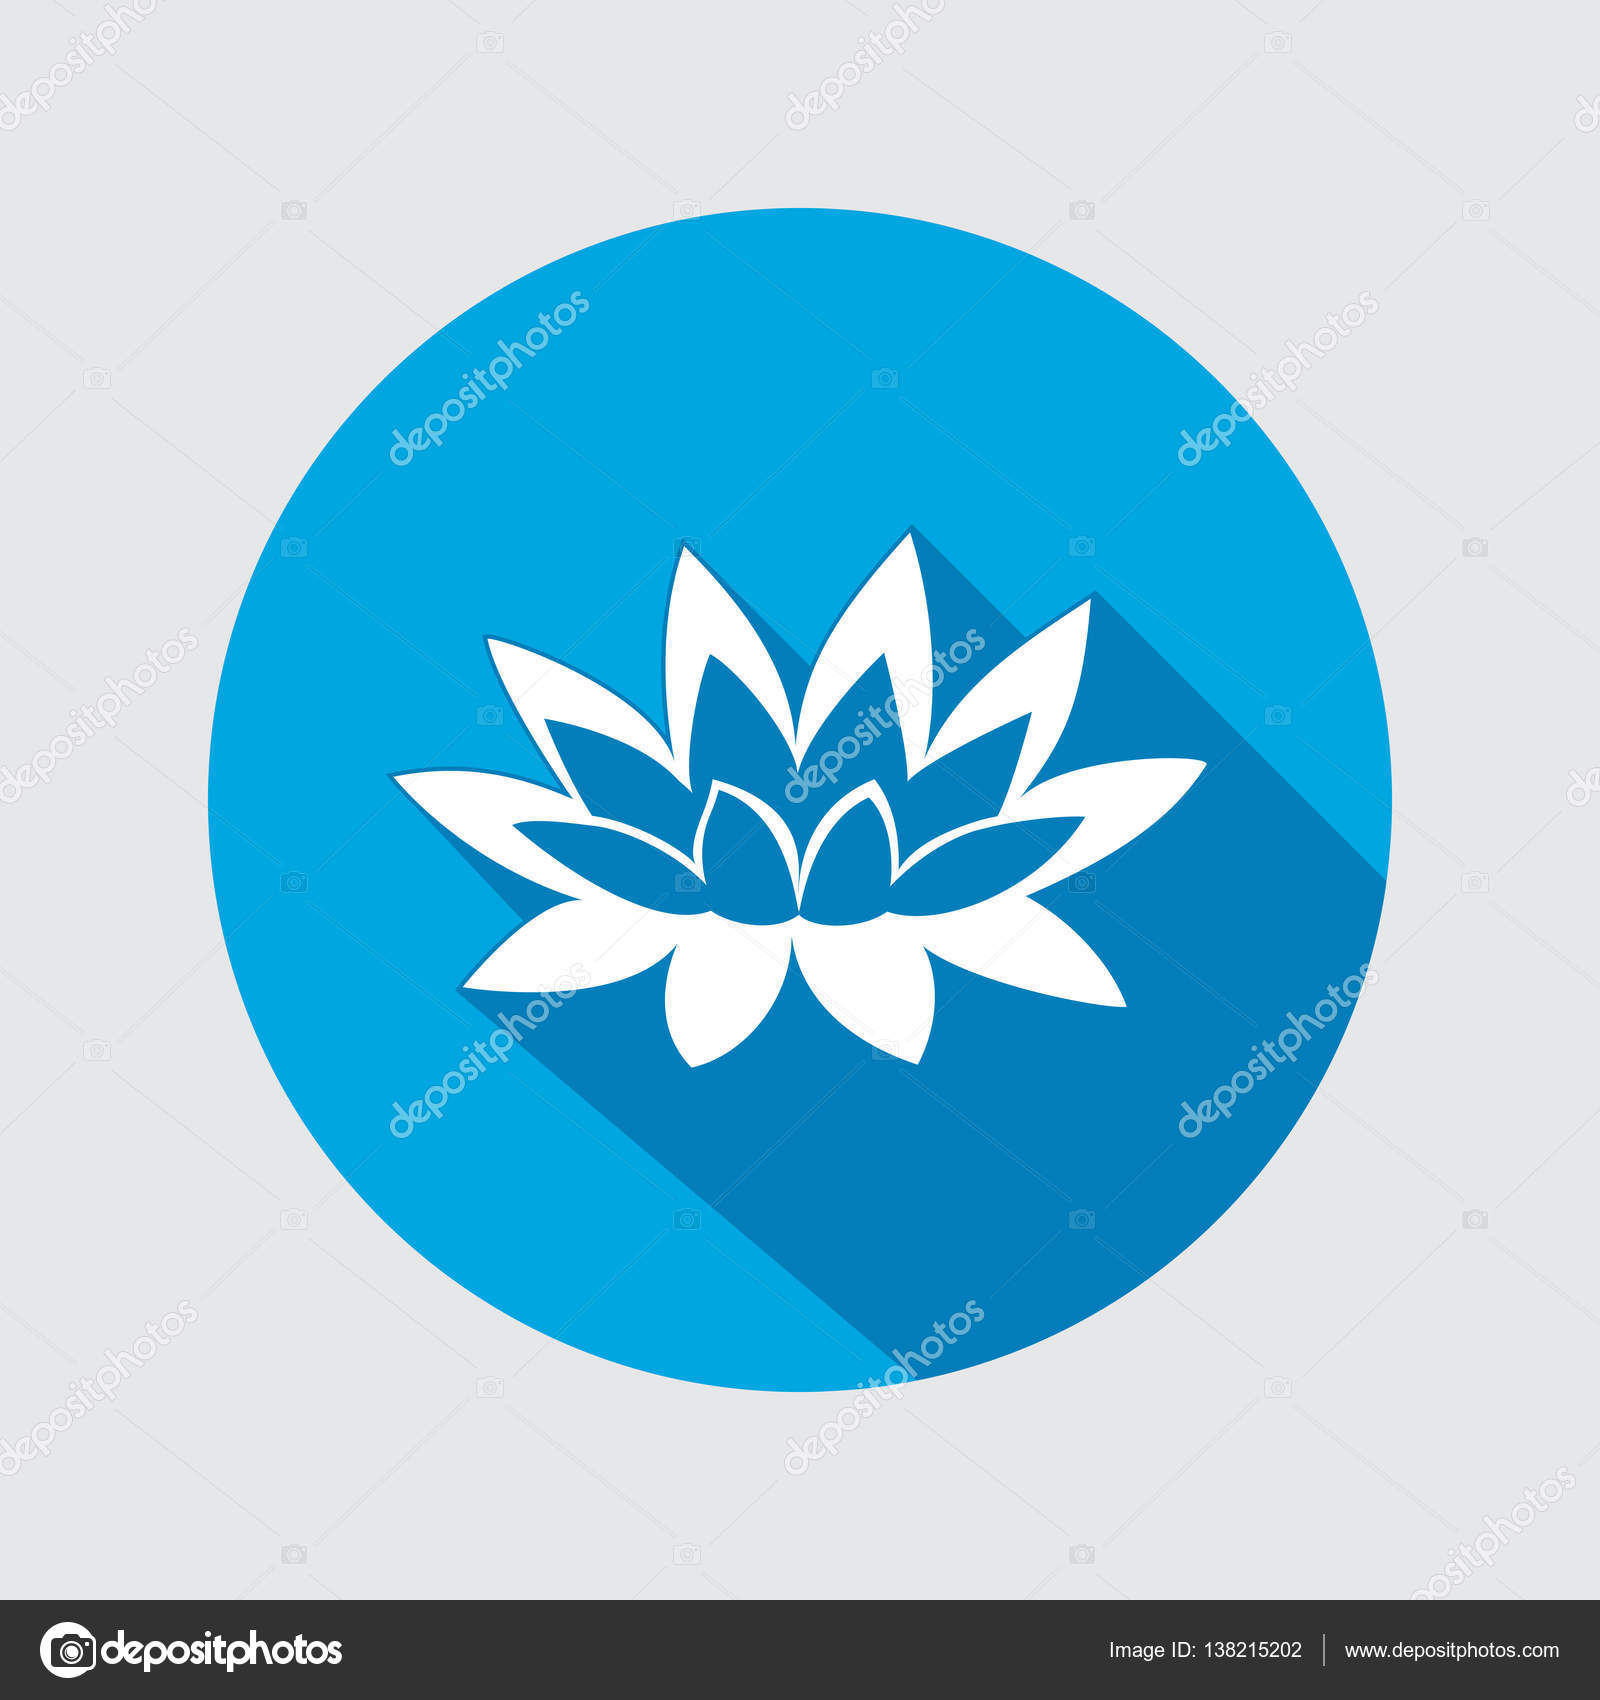 Lily flower icon water lilies waterlily floral symbol round lily flower icon water lilies waterlily floral symbol round circle flat sign izmirmasajfo Choice Image